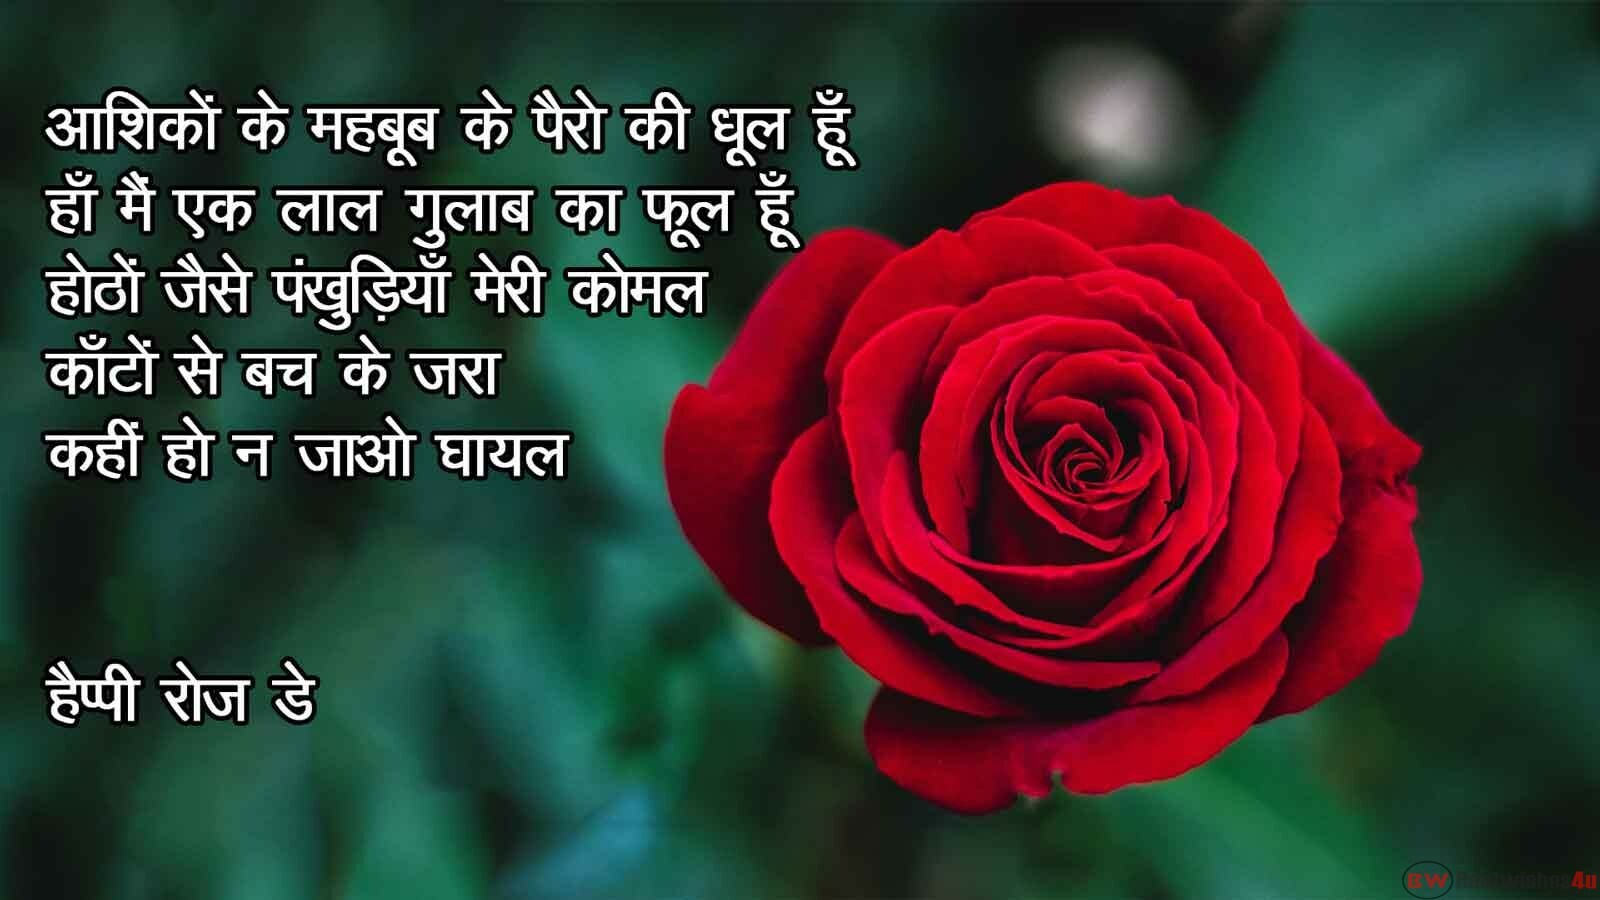 Rose Day Shayari In Hindi 2020, Rose Day Wishes, Rose Day Quotes, Rose Day Messages